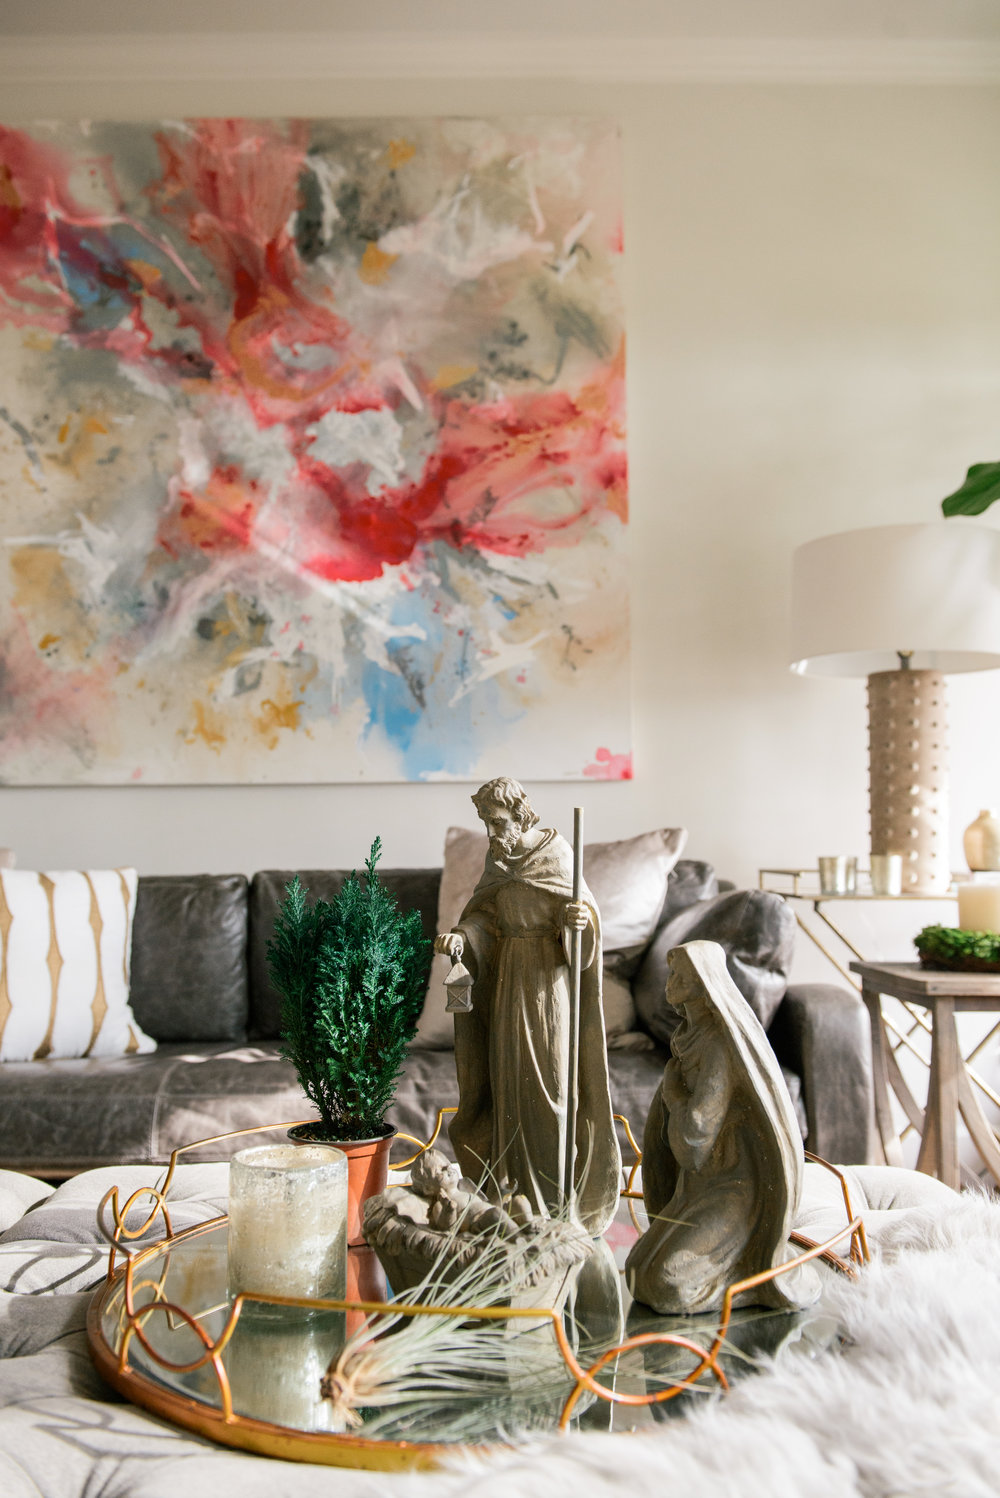 Room designed and painting commissioned by Katrina Porter Designs. Artist: Carrie Pittman. Photo by Paula Coldiron.